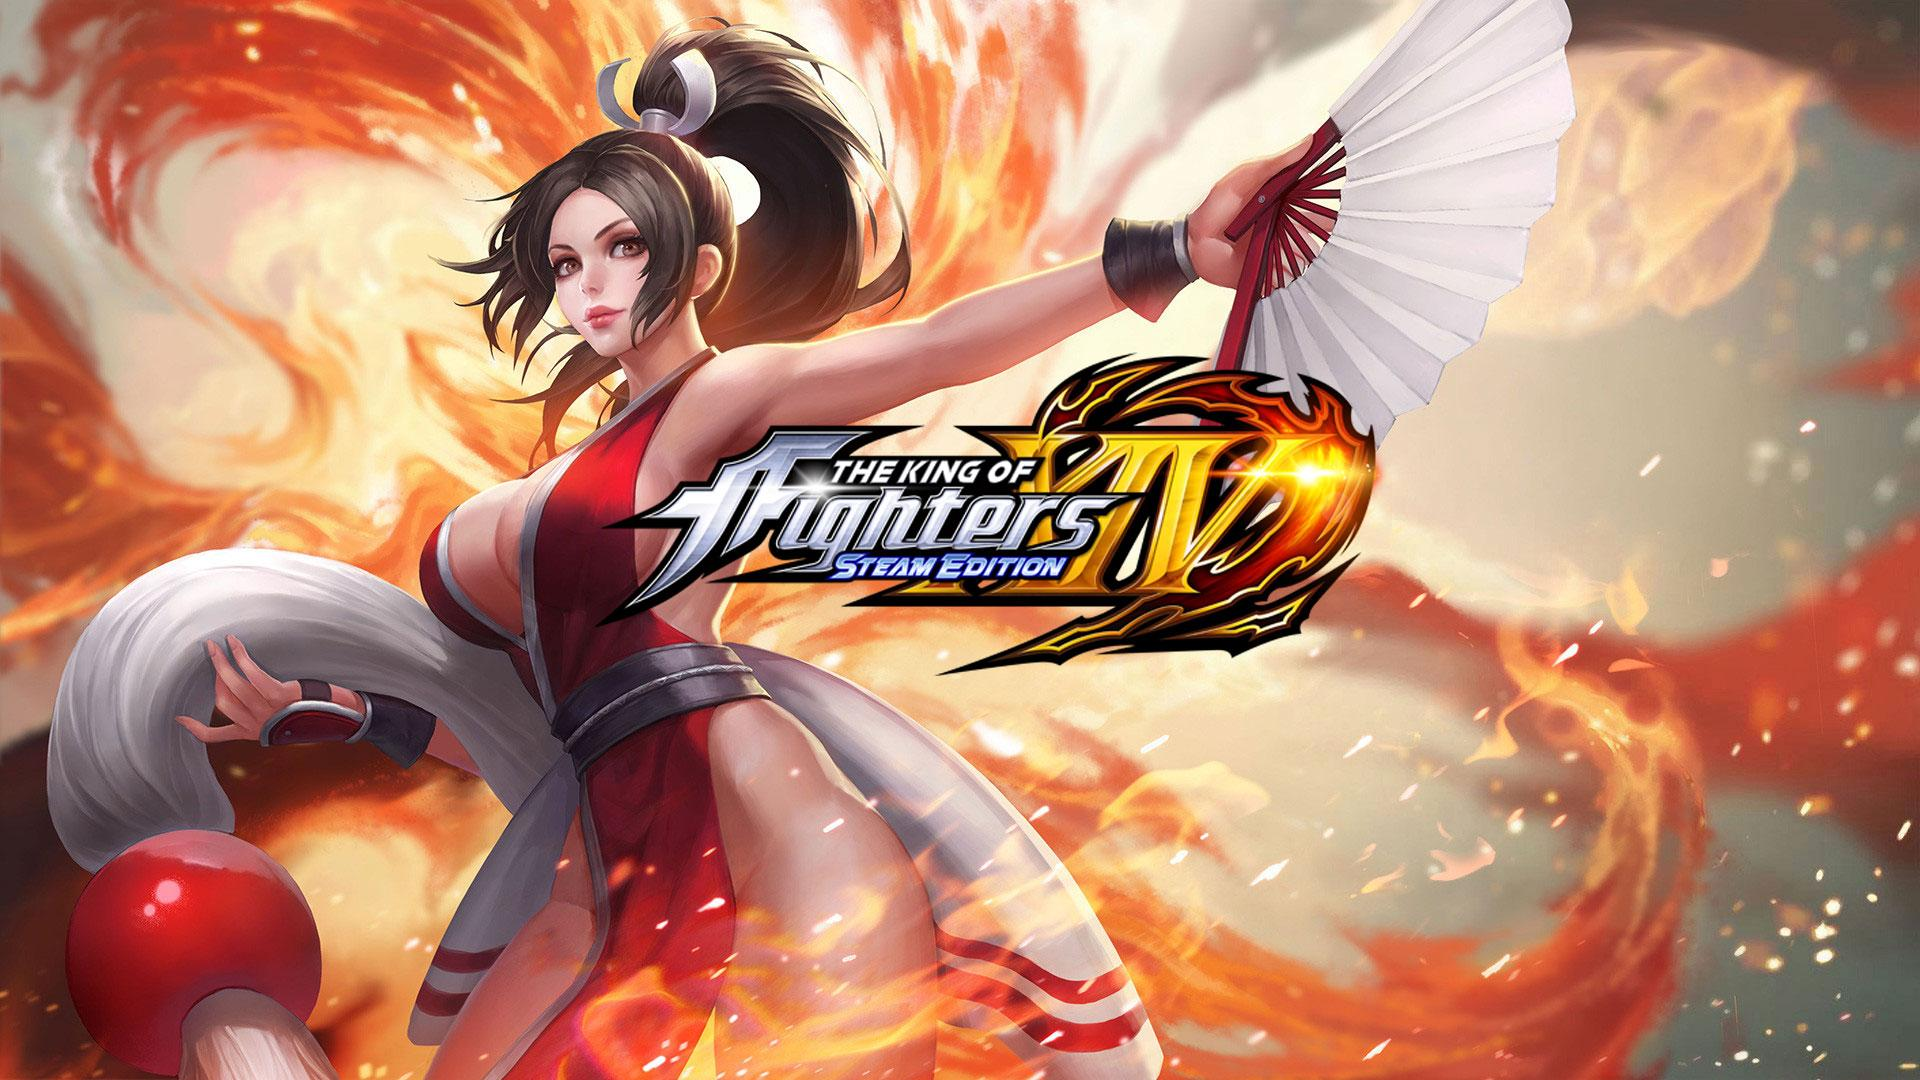 The King of Fighters XIV 2